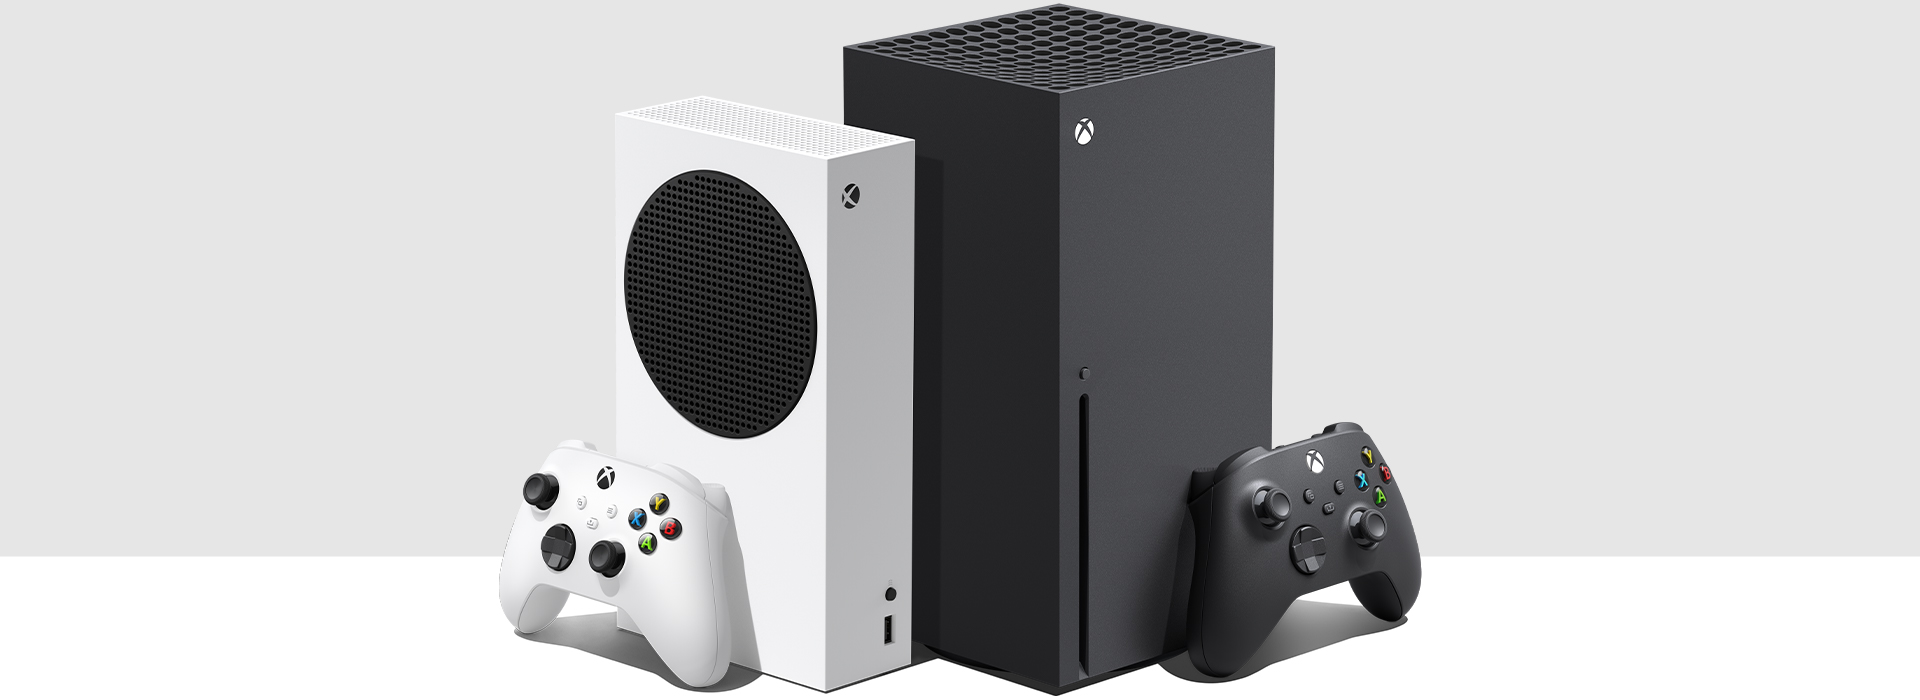 Xbox Series S and Xbox Series X consoles side by side.